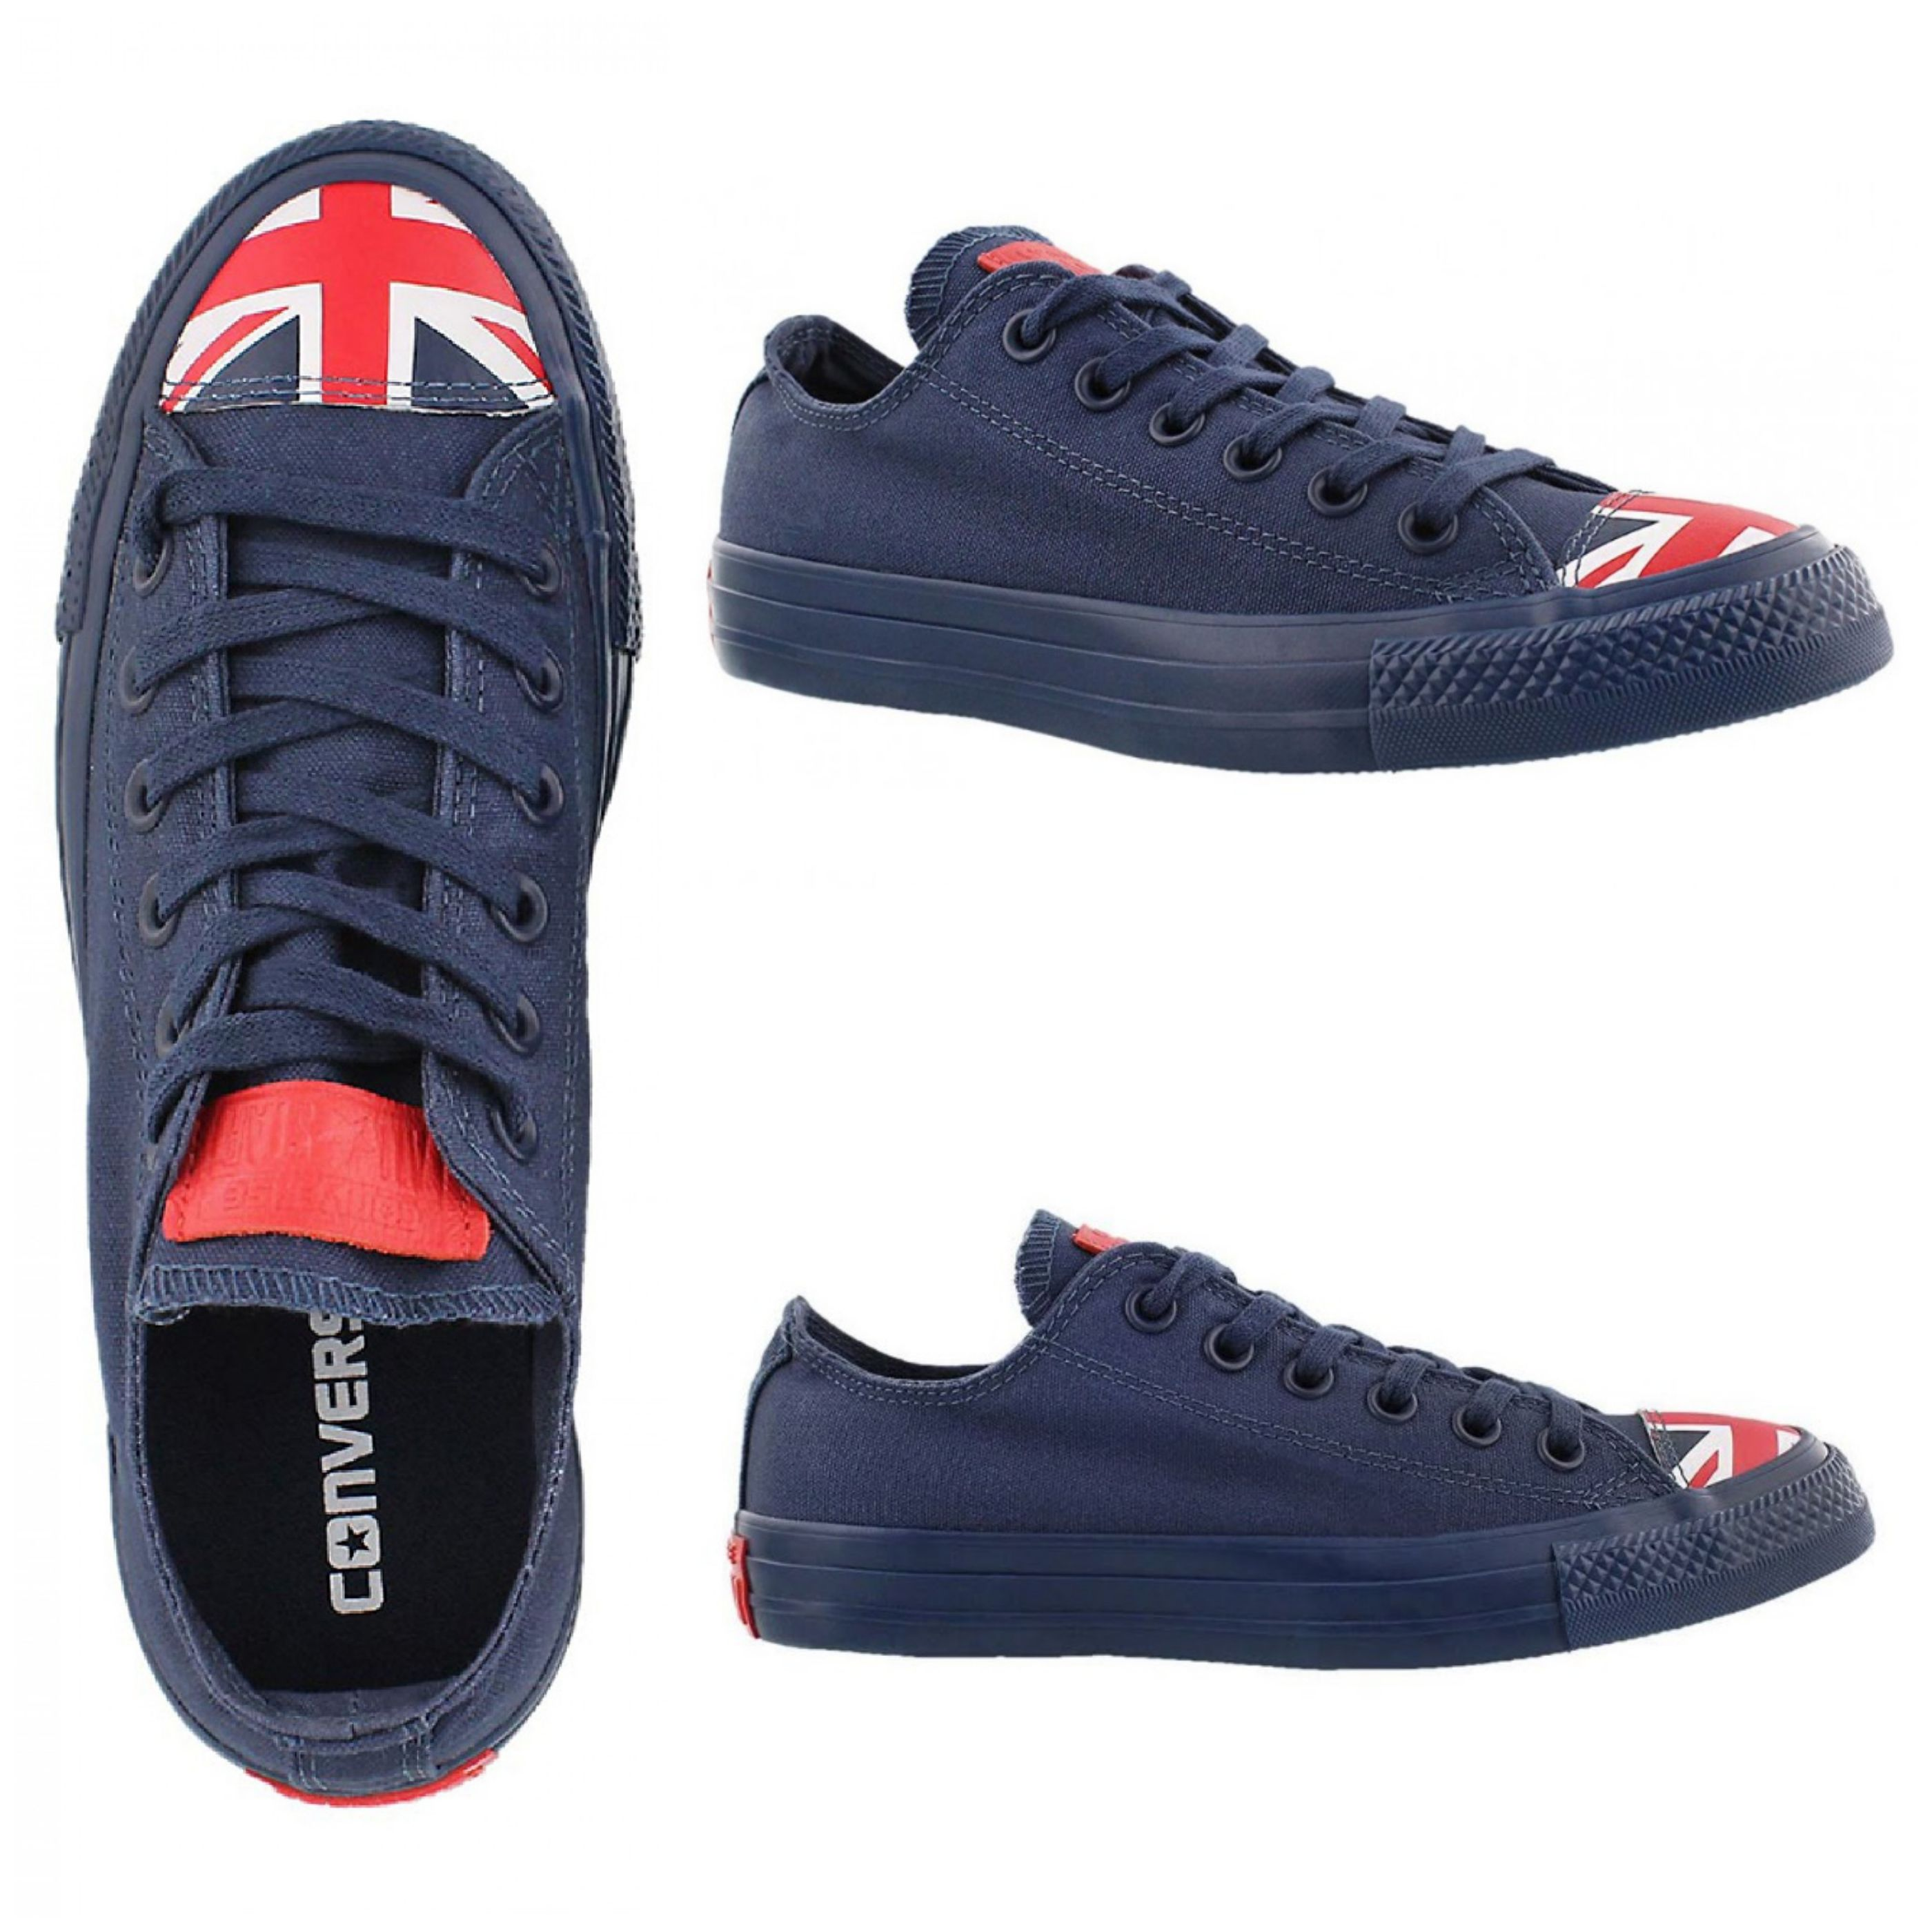 07f8559f3a349a The Converse Chuck Taylor All Star Flag Toe Cap Low Top Union Jack shoe in  Navy Red White is a funky and innovative shoe for the British lover out  there.